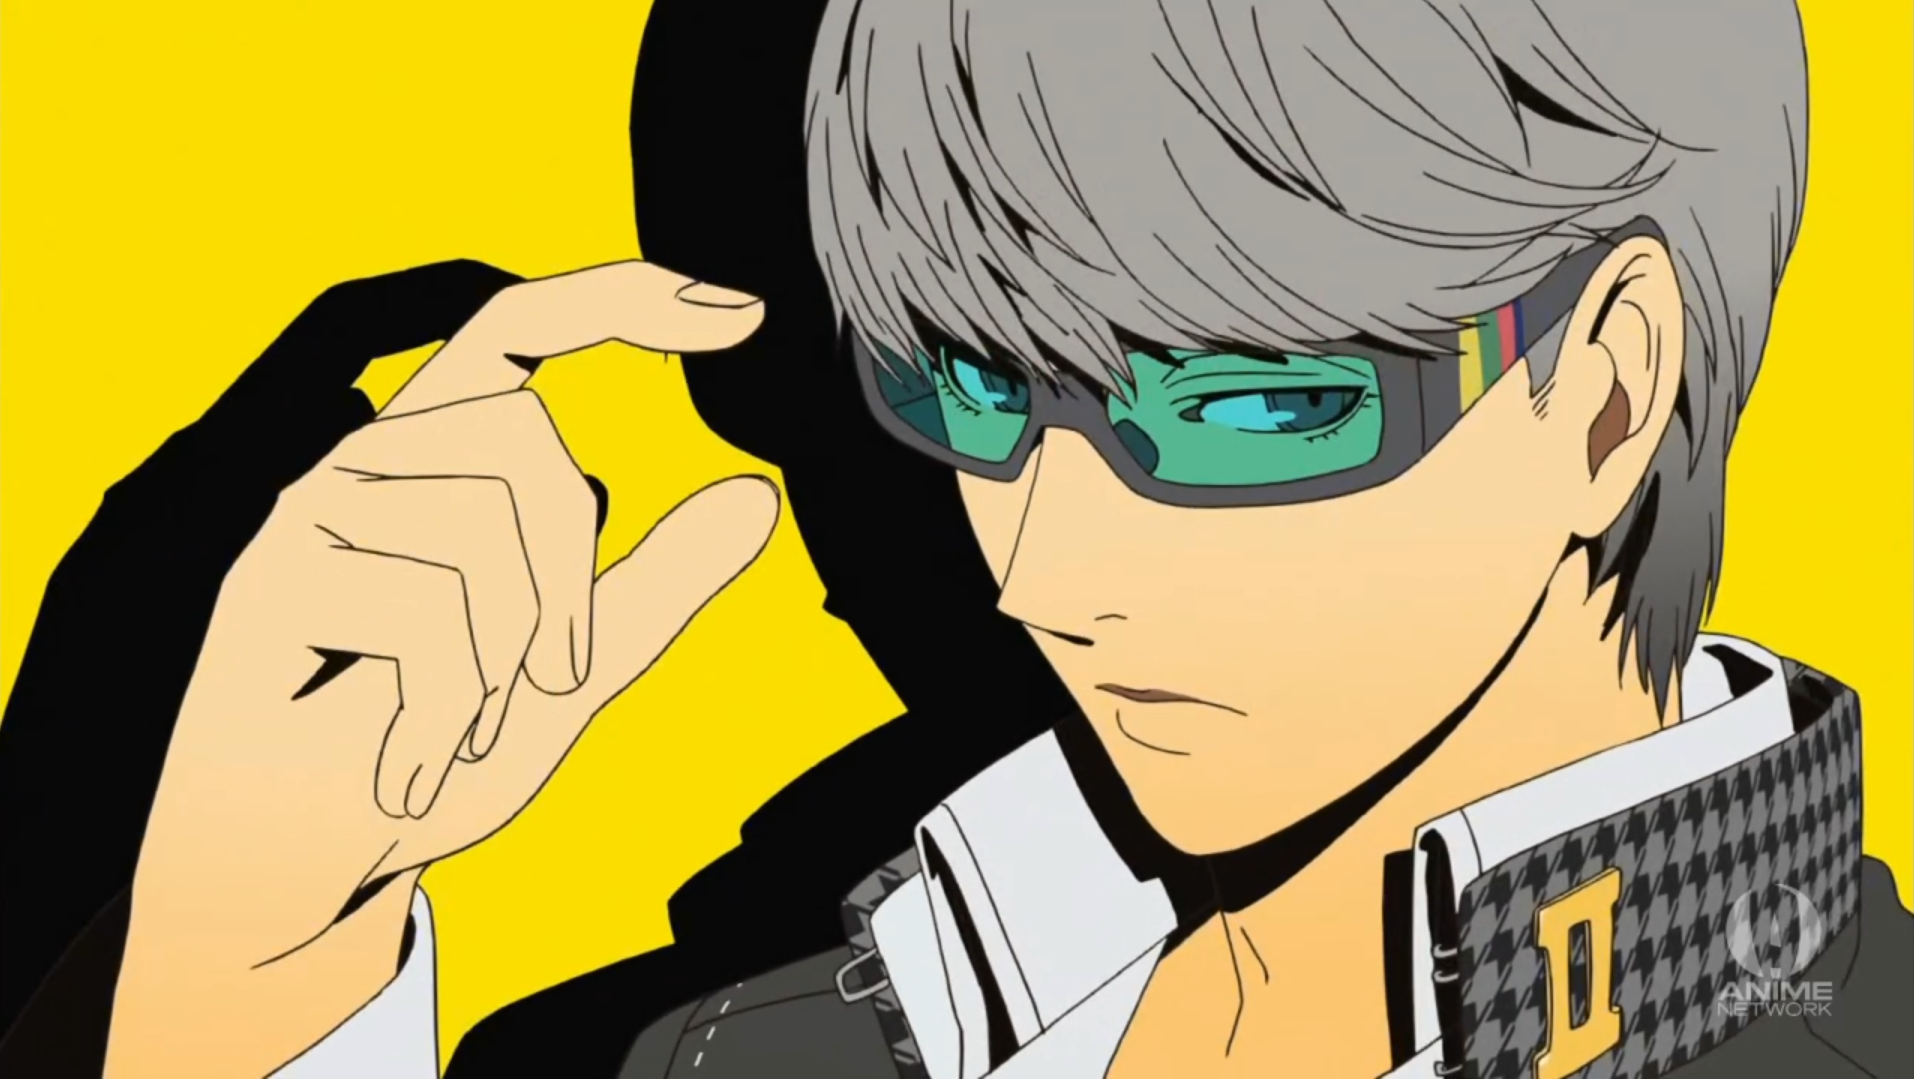 THE OFFICIAL YU NARUKAMI (Persona 4) MOVESET!